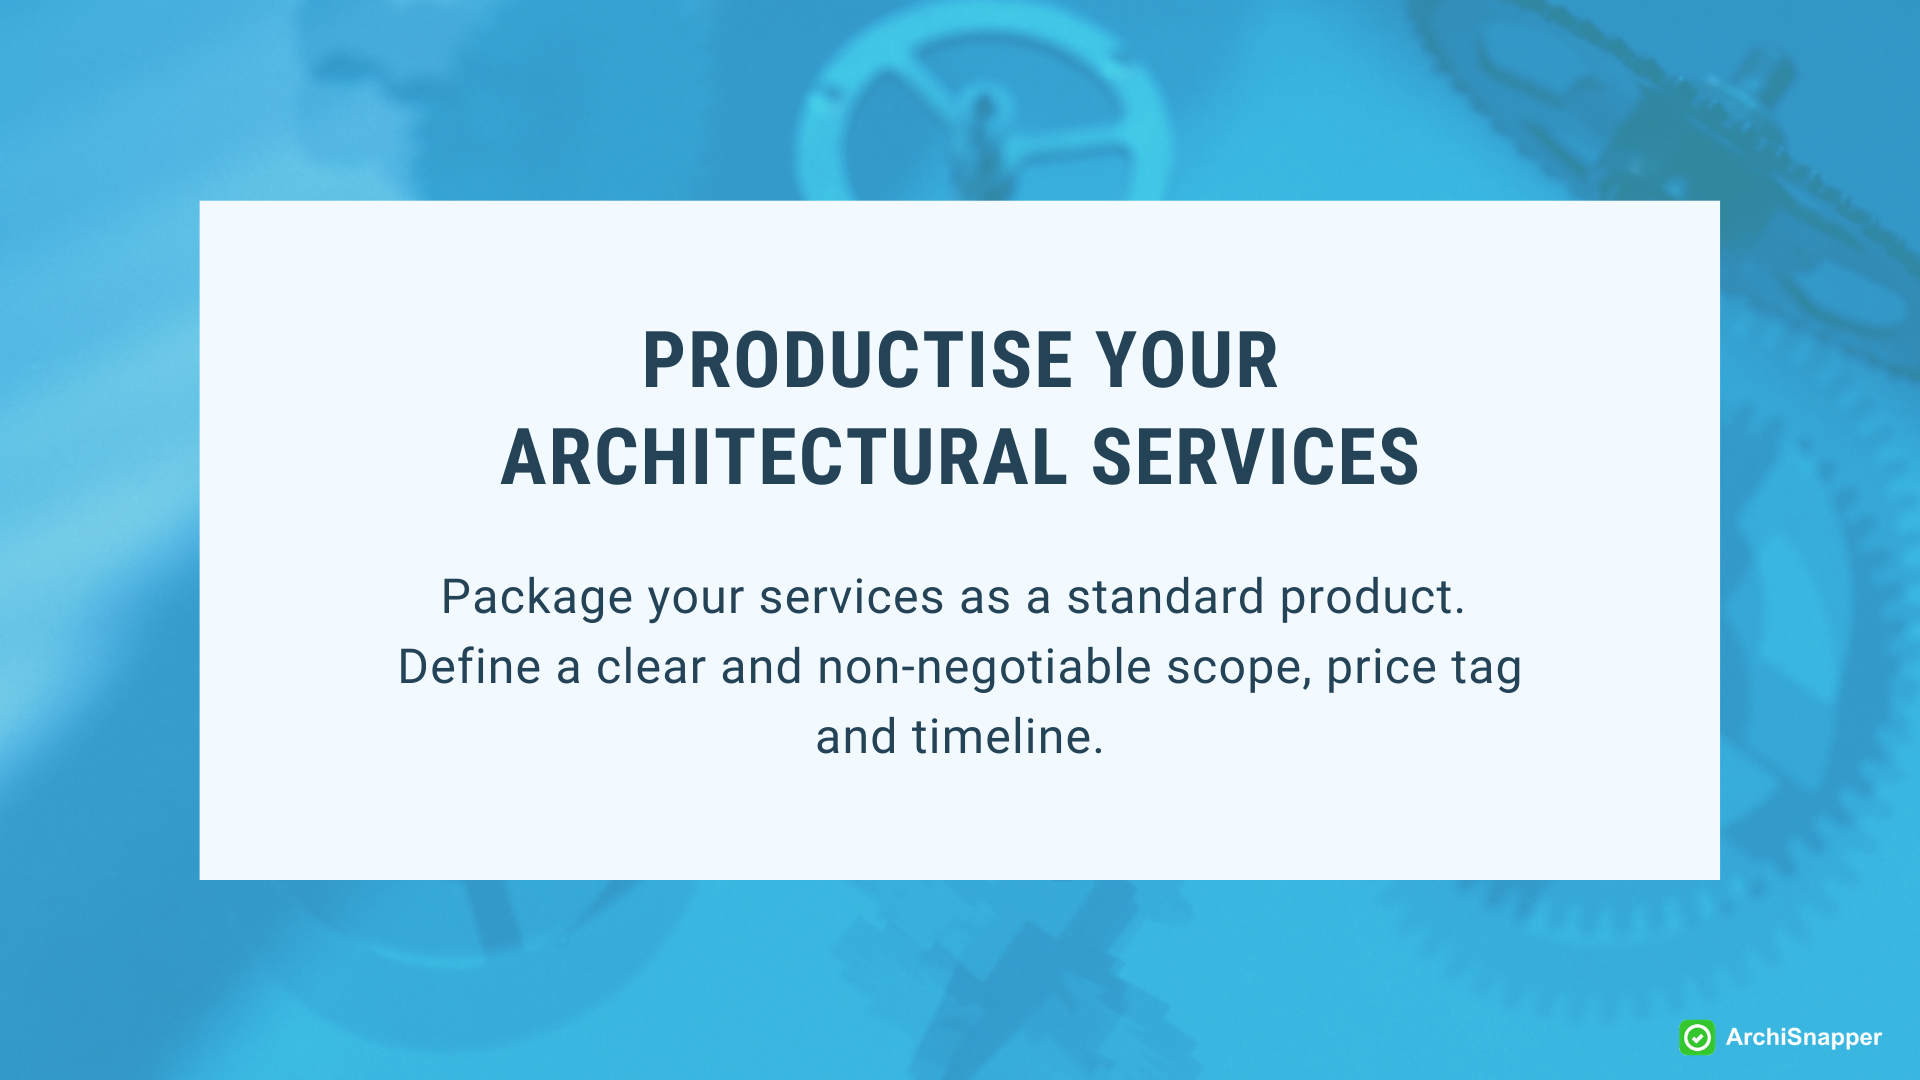 Productise your architectural services | ArchiSnapper